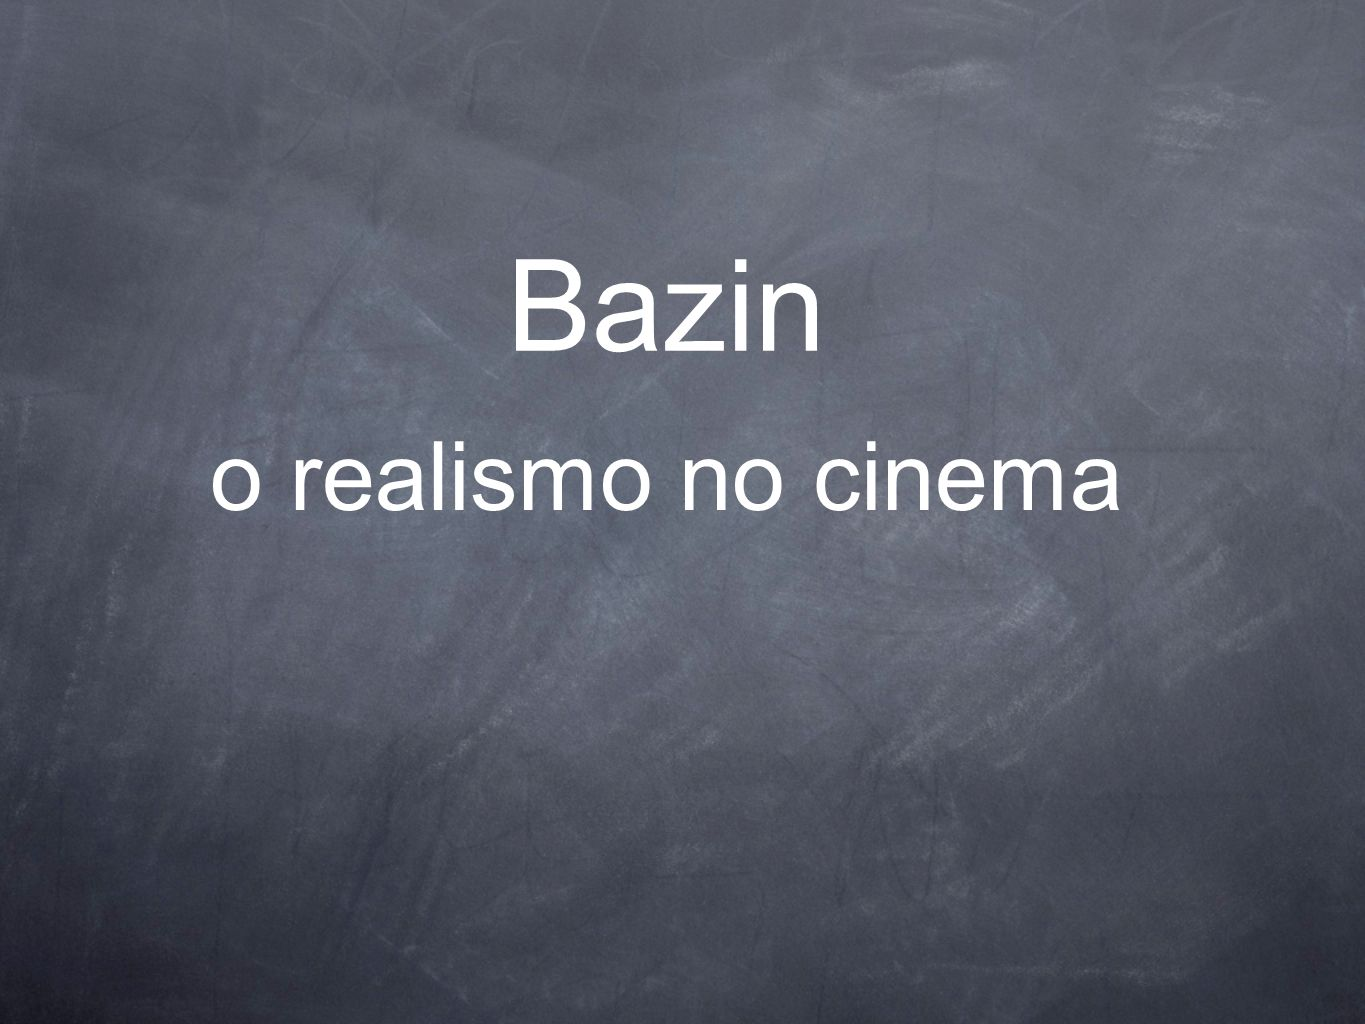 Bazin o realismo no cinema